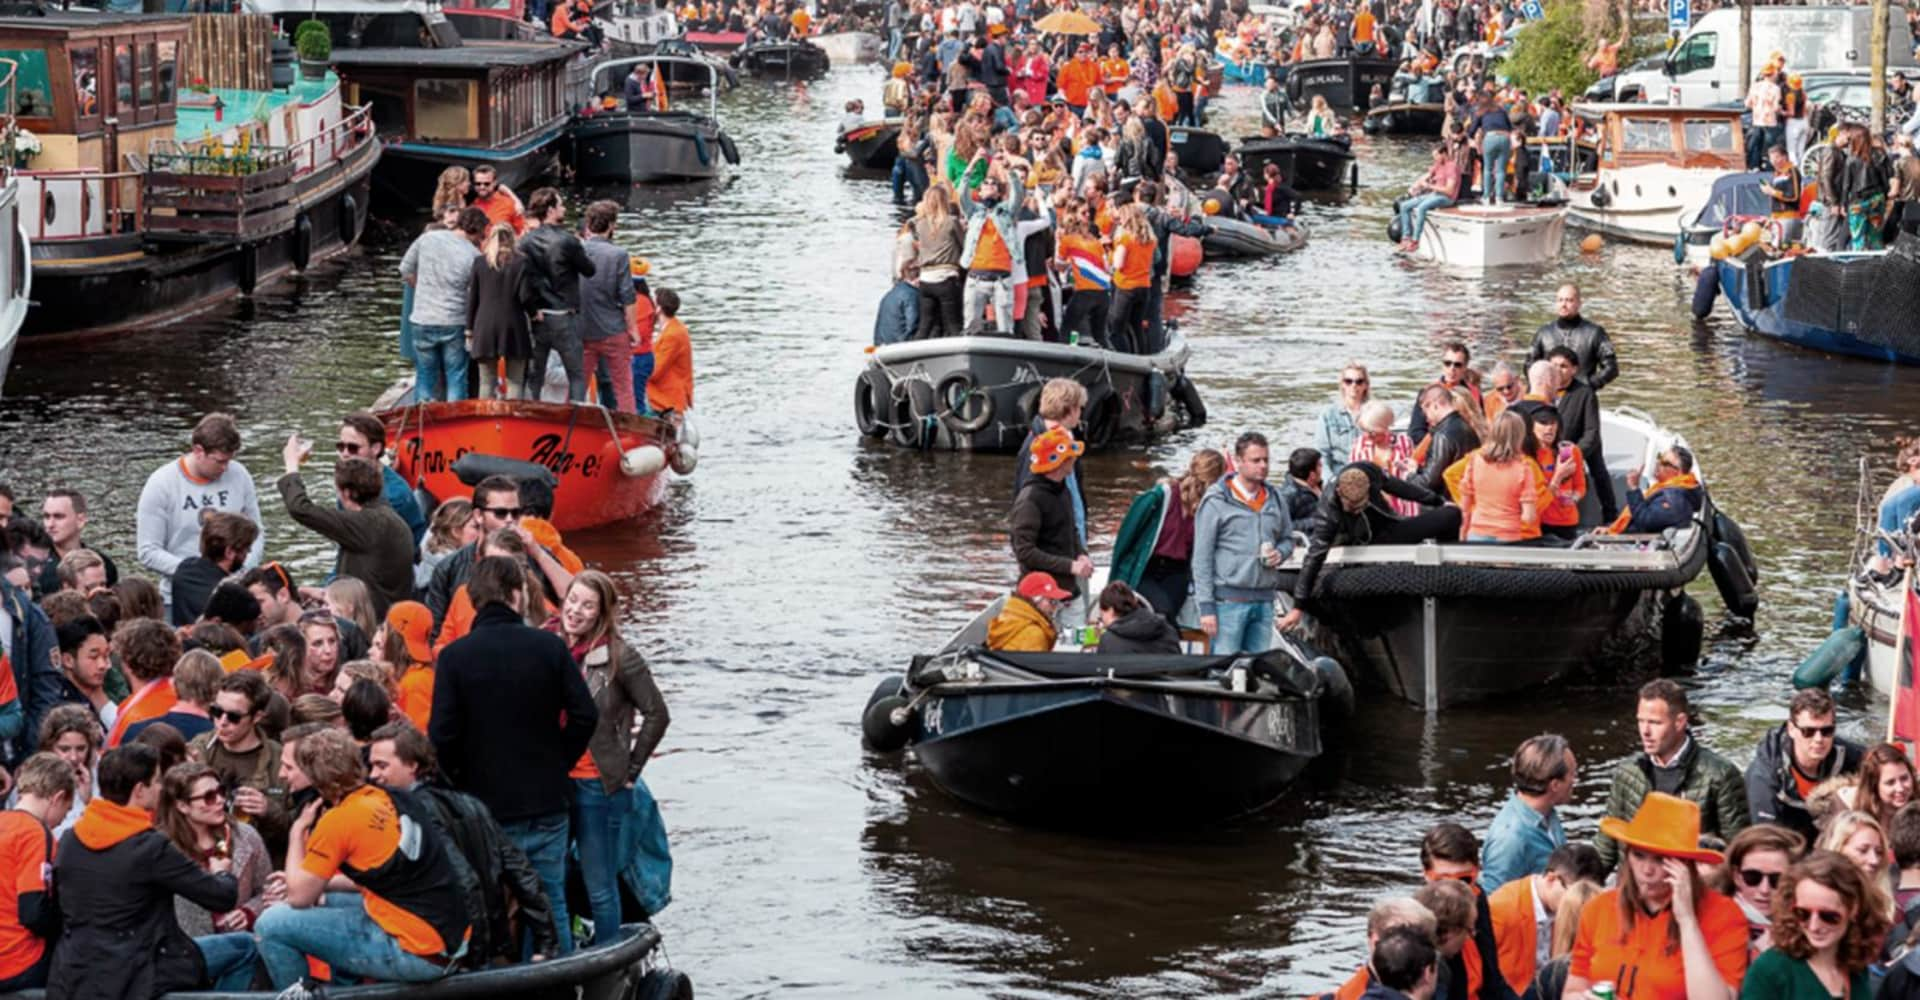 King's Day Escape  - The Toren Amsterdam - By the Pavilions